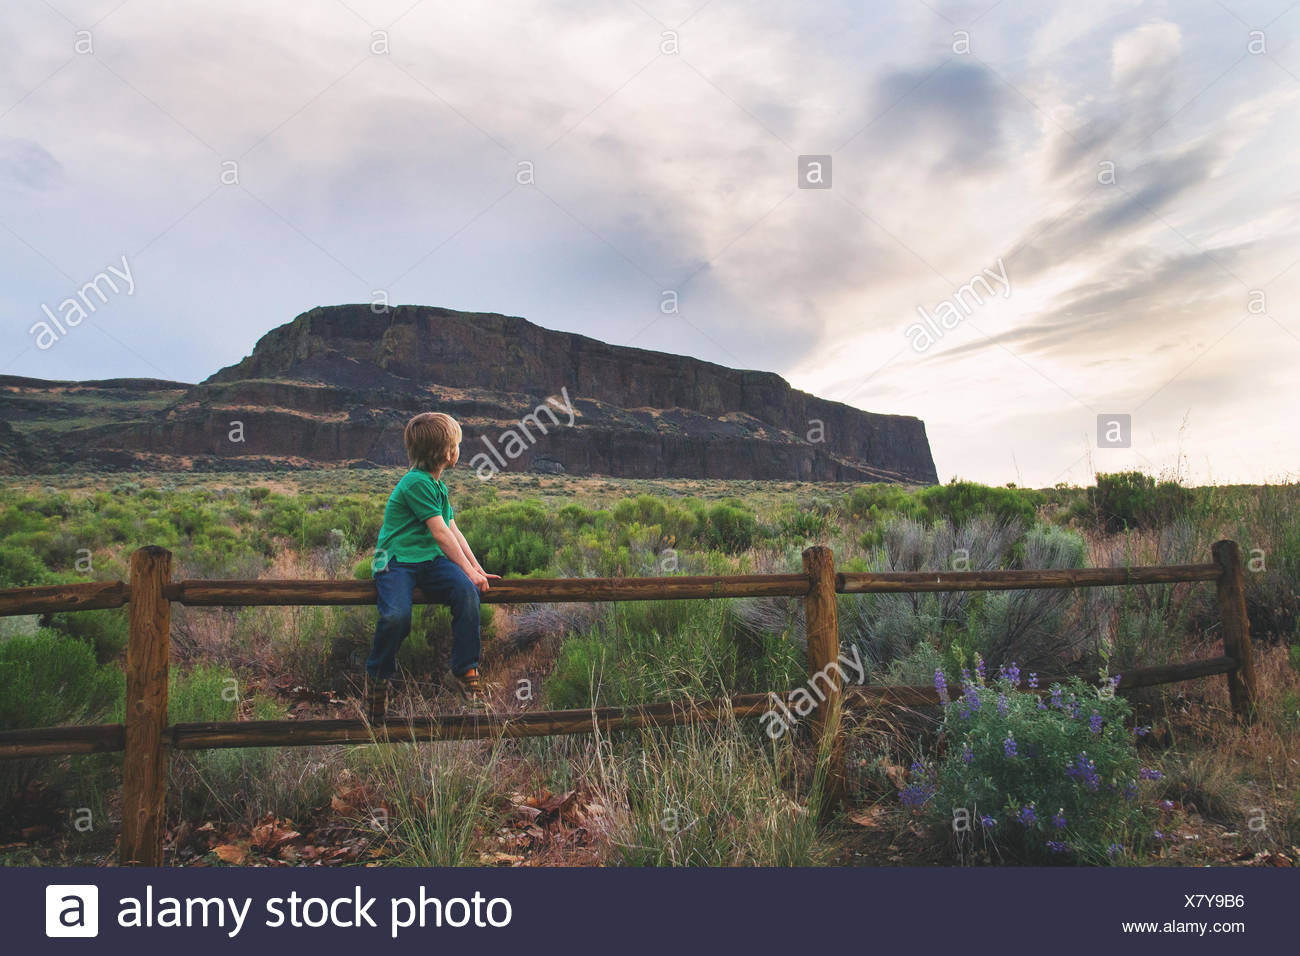 Boy sitting on wooden fence looking over his shoulder - Stock Image